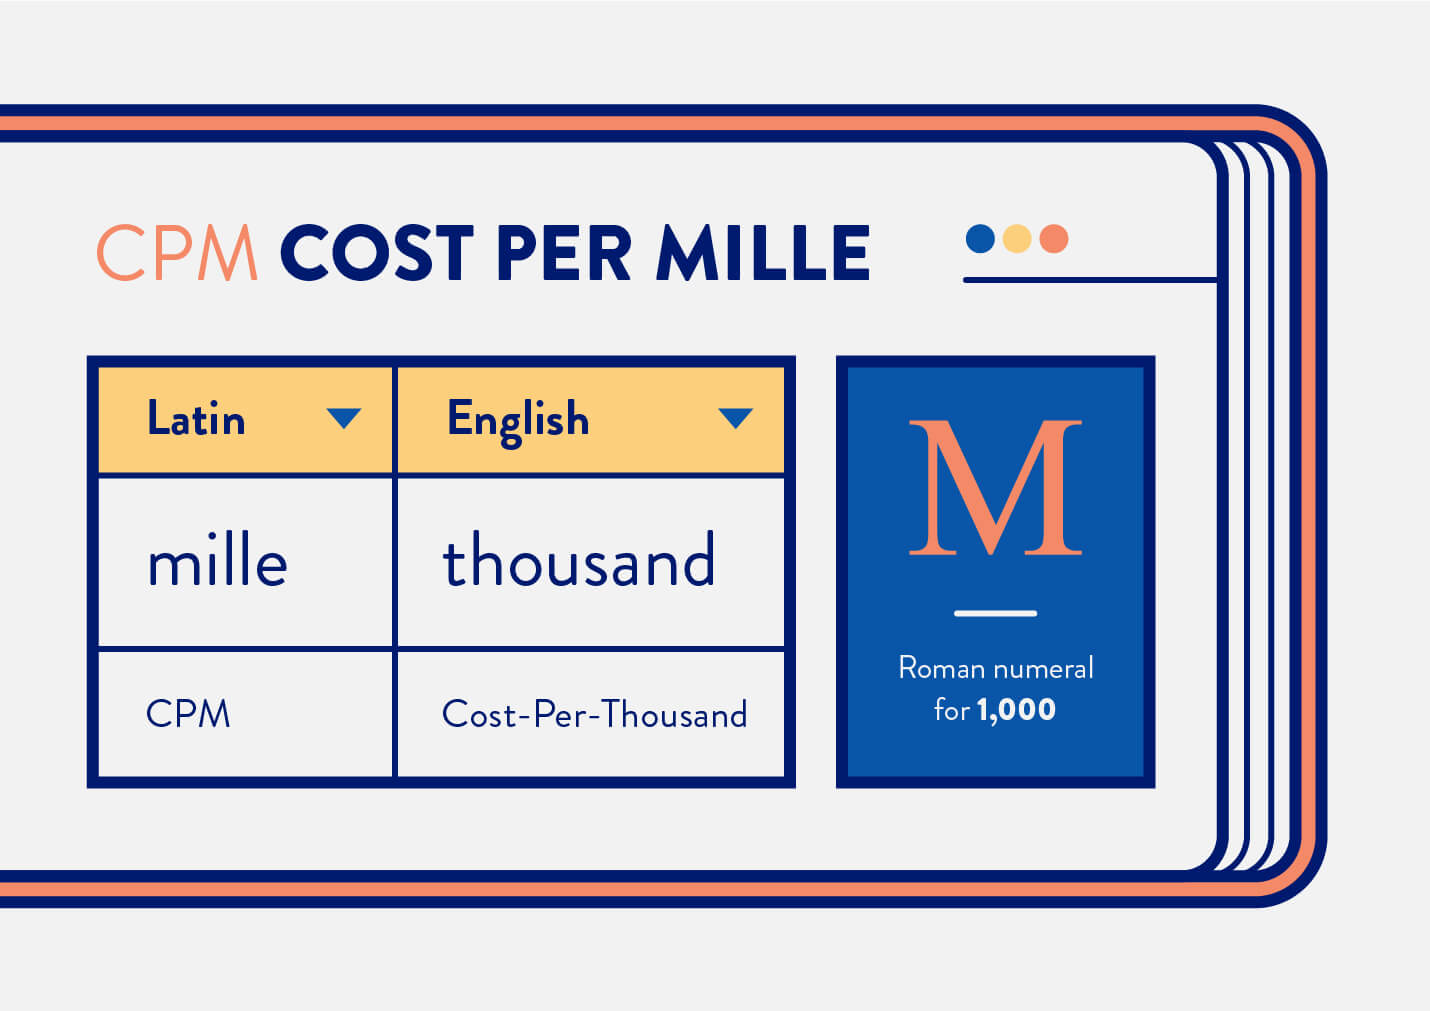 cost per mille translated to cost per thousand where M stands for 1,000